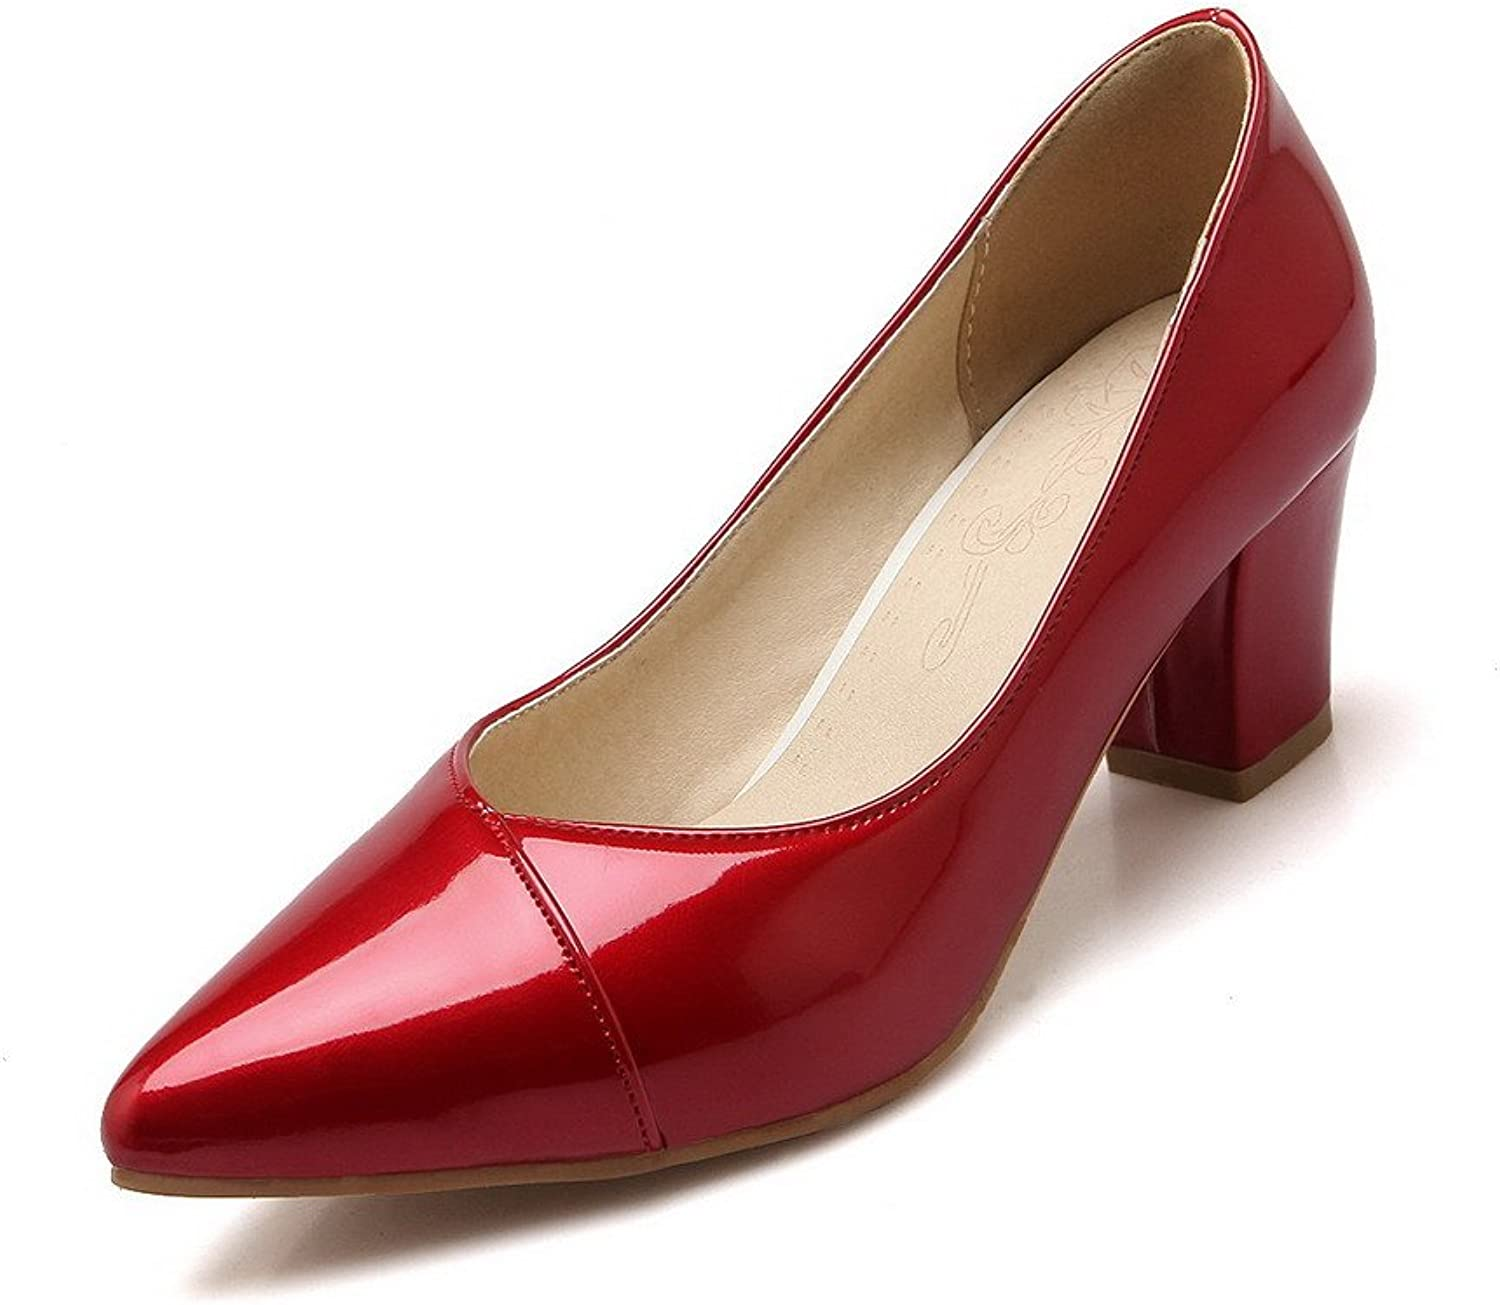 AllhqFashion Women's Blend Materials Solid Pull On Pointed Closed Toe Kitten Heels Pumps-shoes